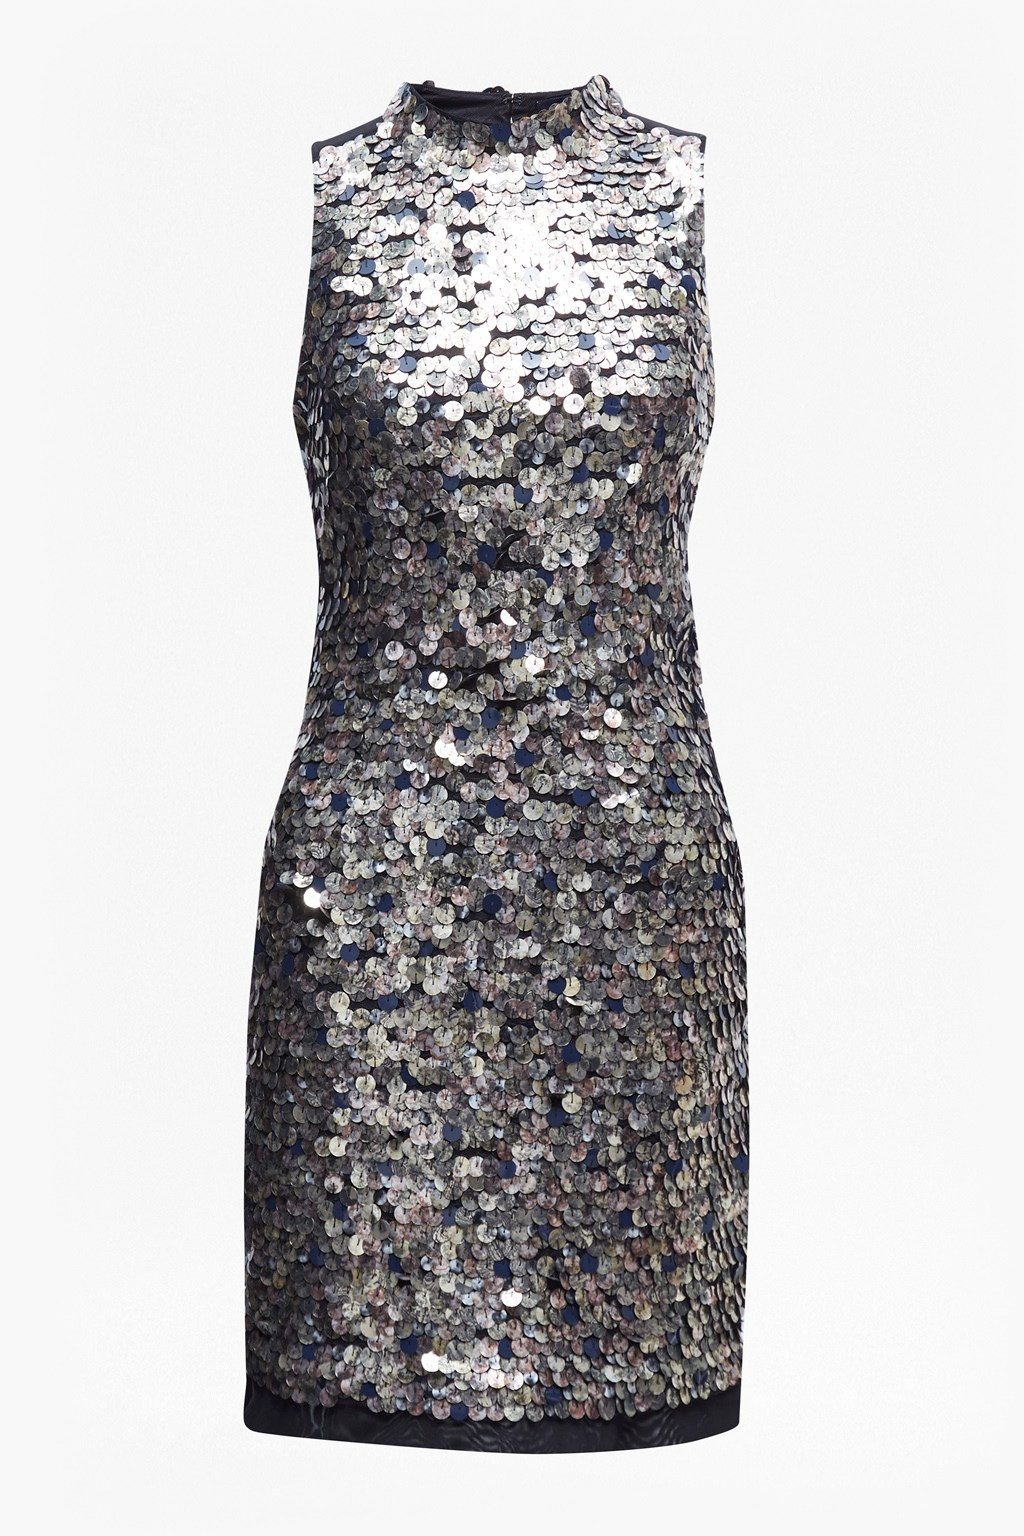 6134aaca6fe Moon Rock Sparkle Tunic Dress   Day Dresses   French Connection Usa